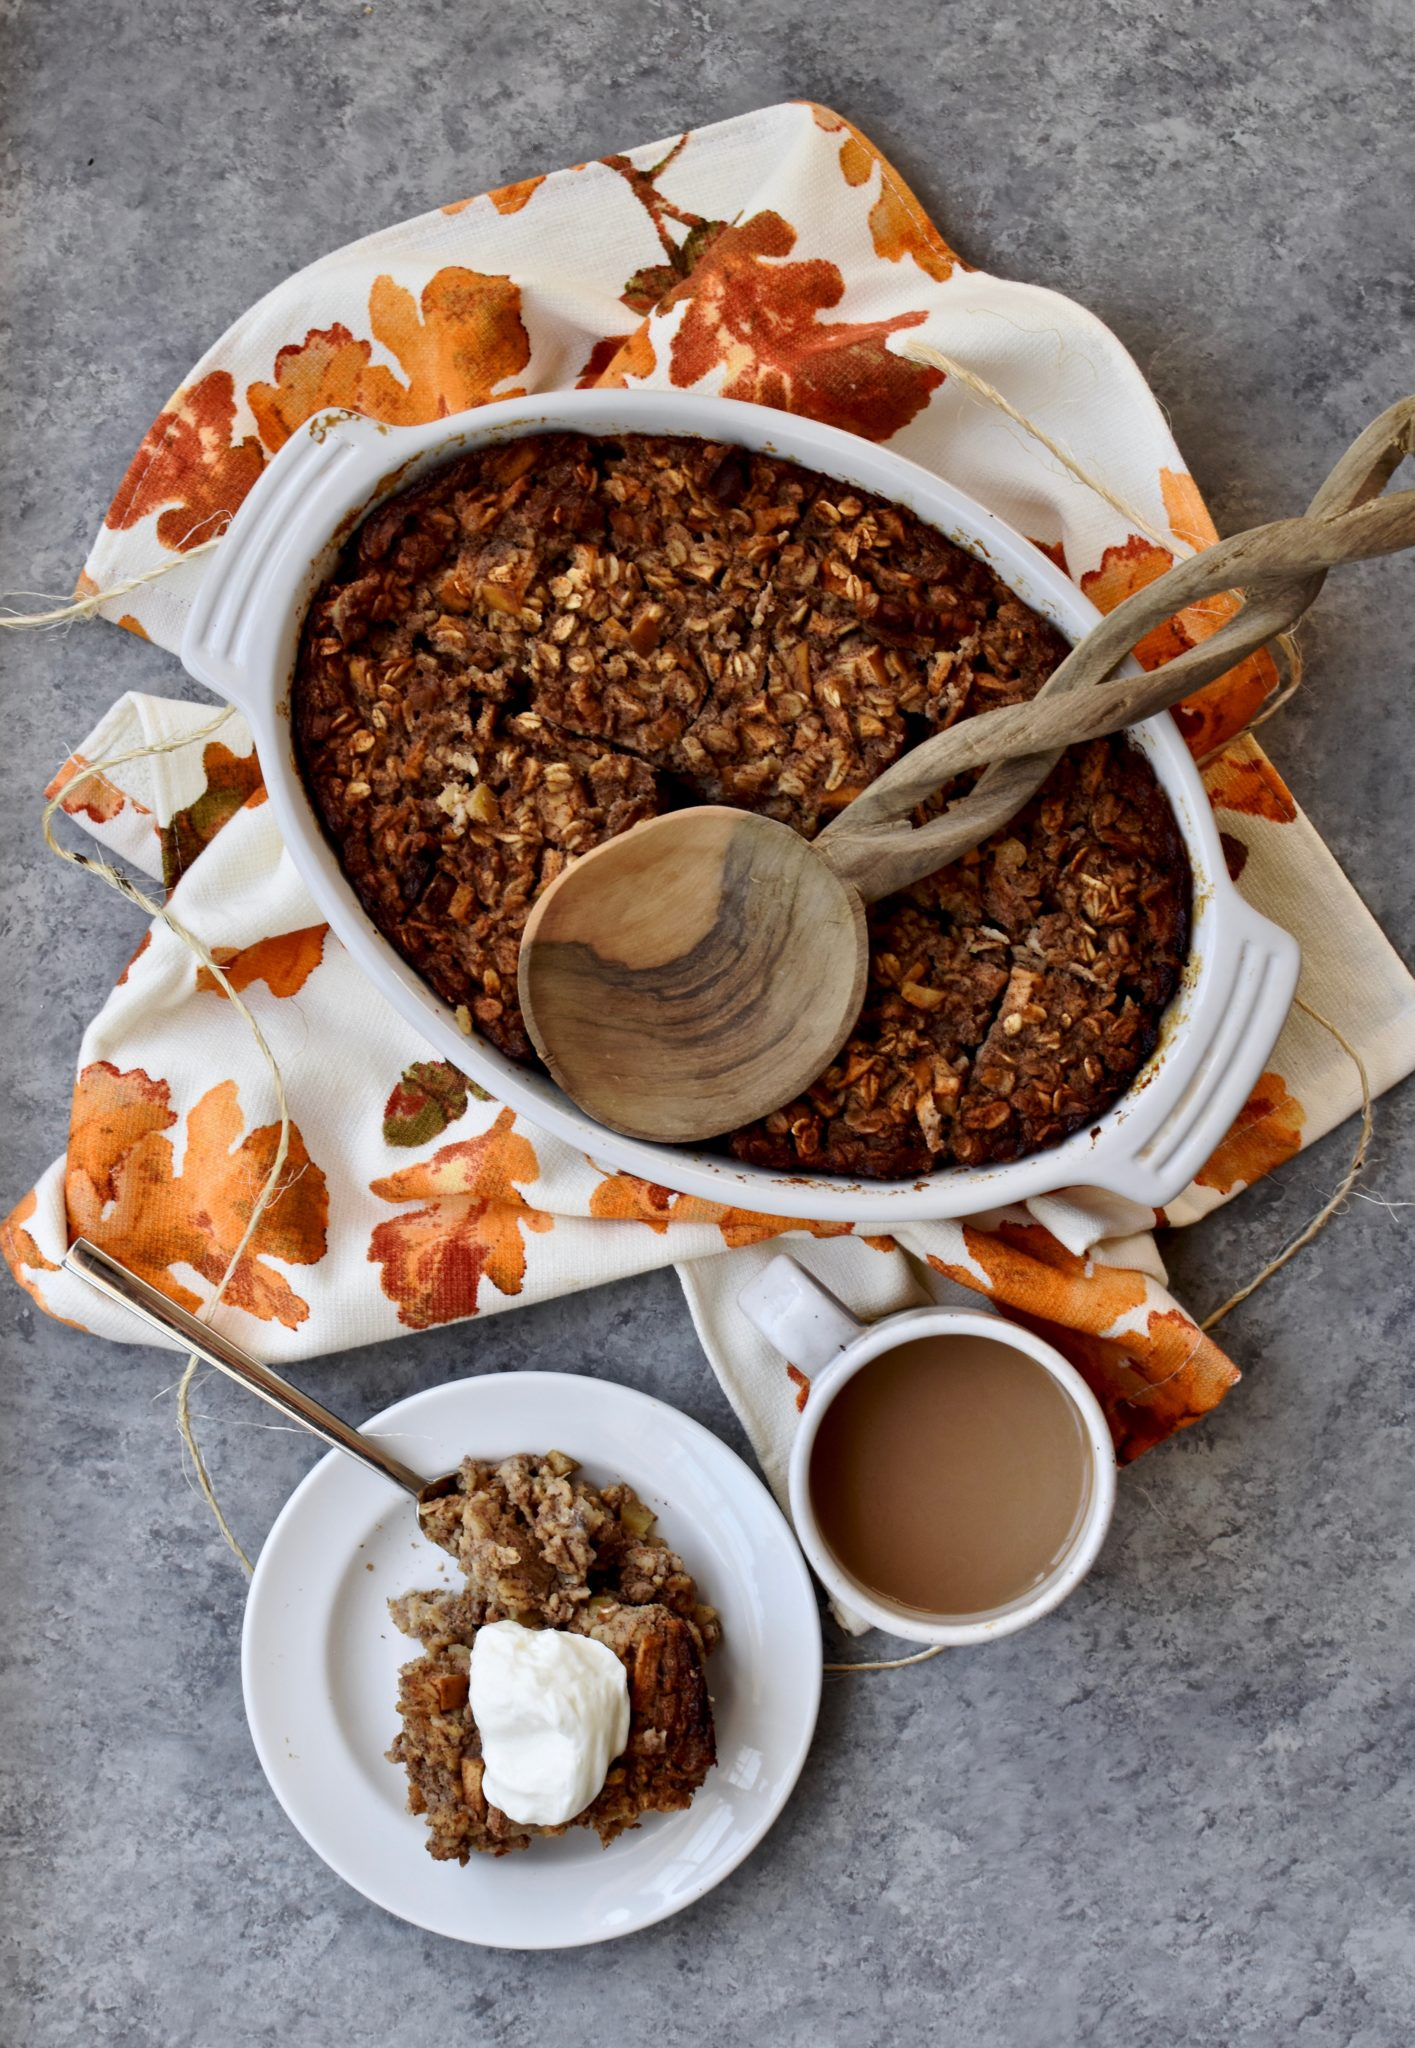 apple cinnamon walnut baked oatmeal